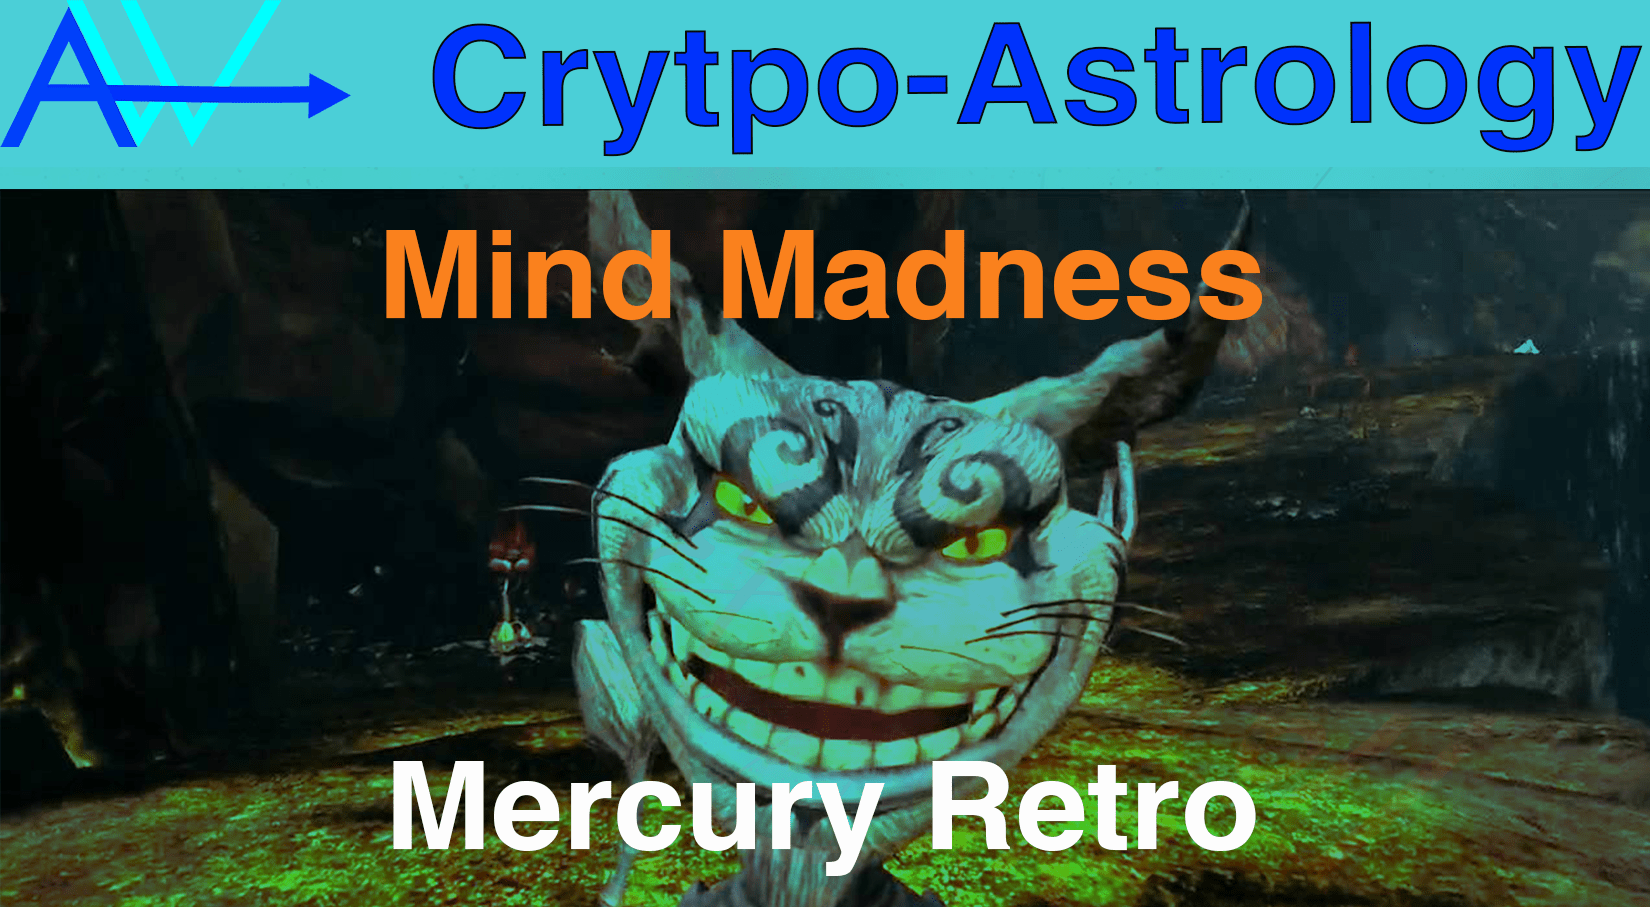 MAYHEM! CONFUSION! Quell the Mind Madness!<br><span style='color:#00adee;font-size:.8em'>Mercury Retrograde </span>